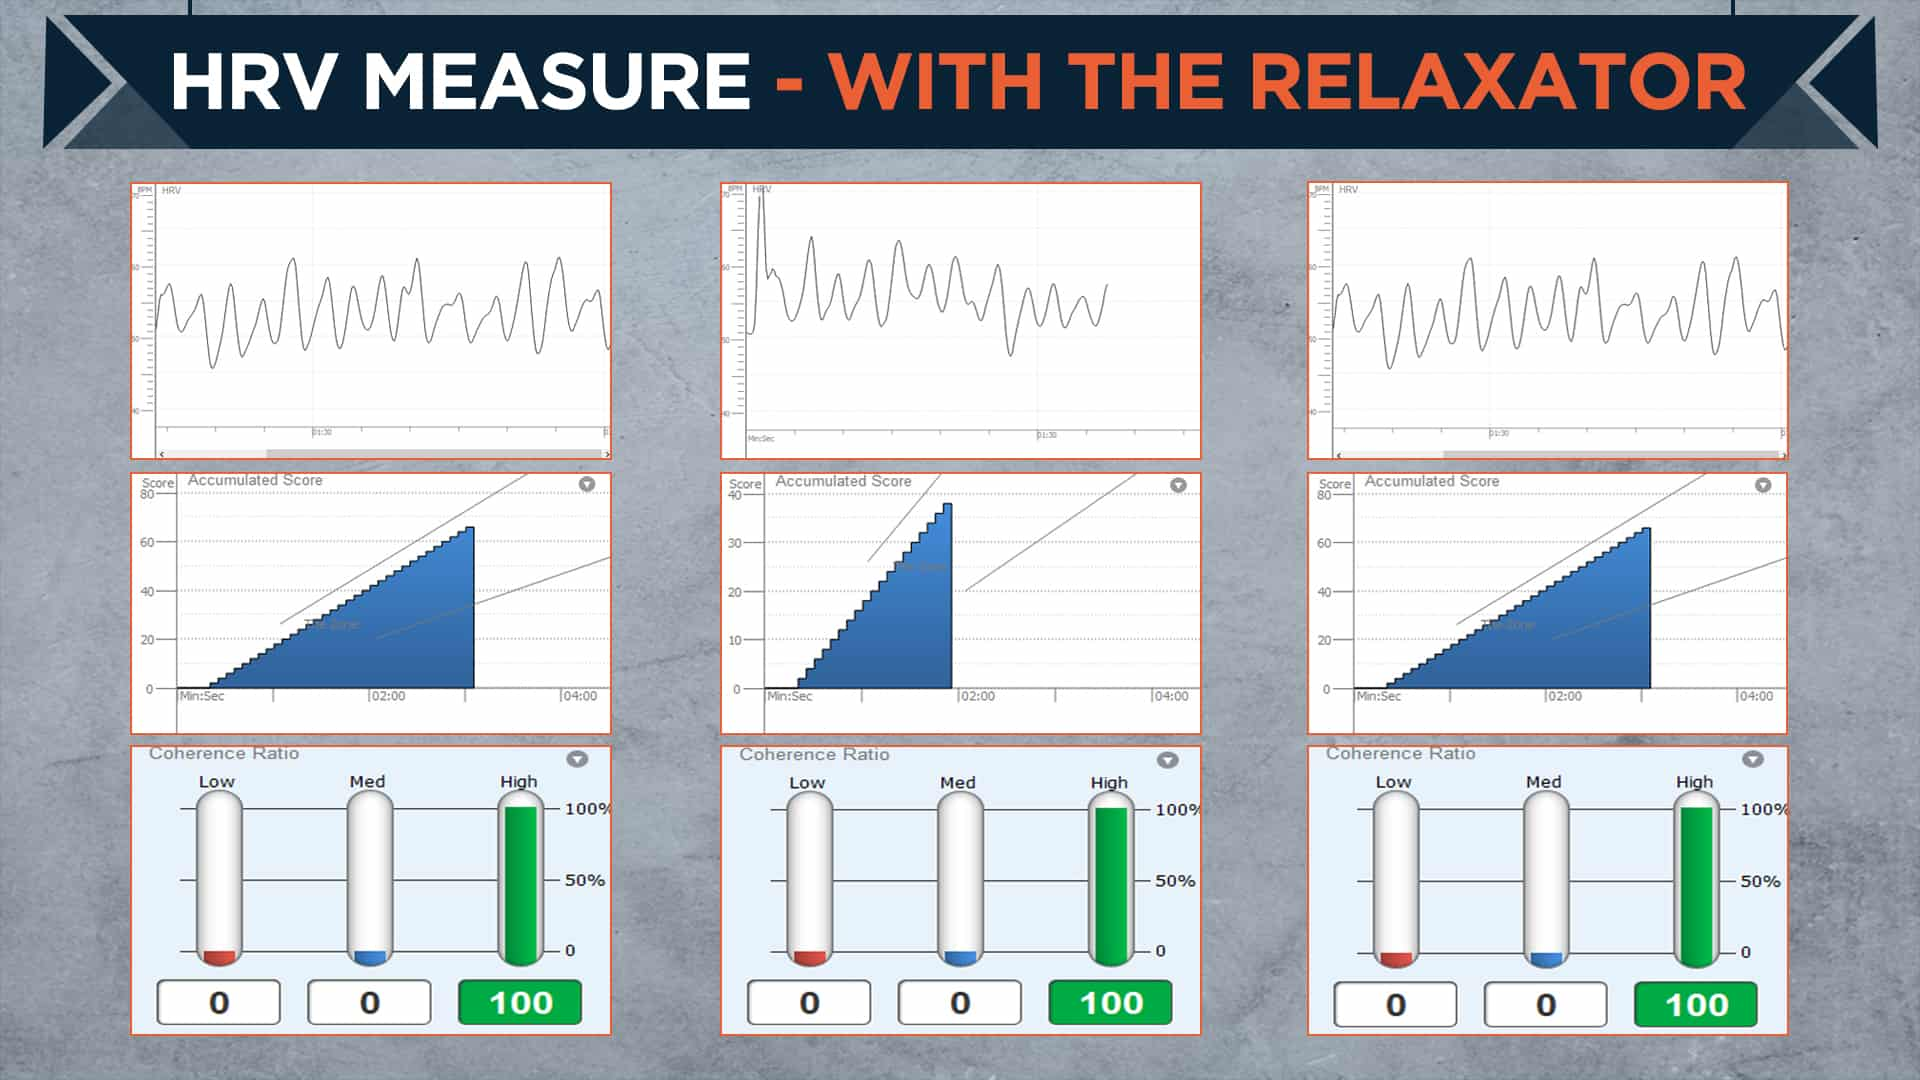 HRV Measure 1 with Relaxator